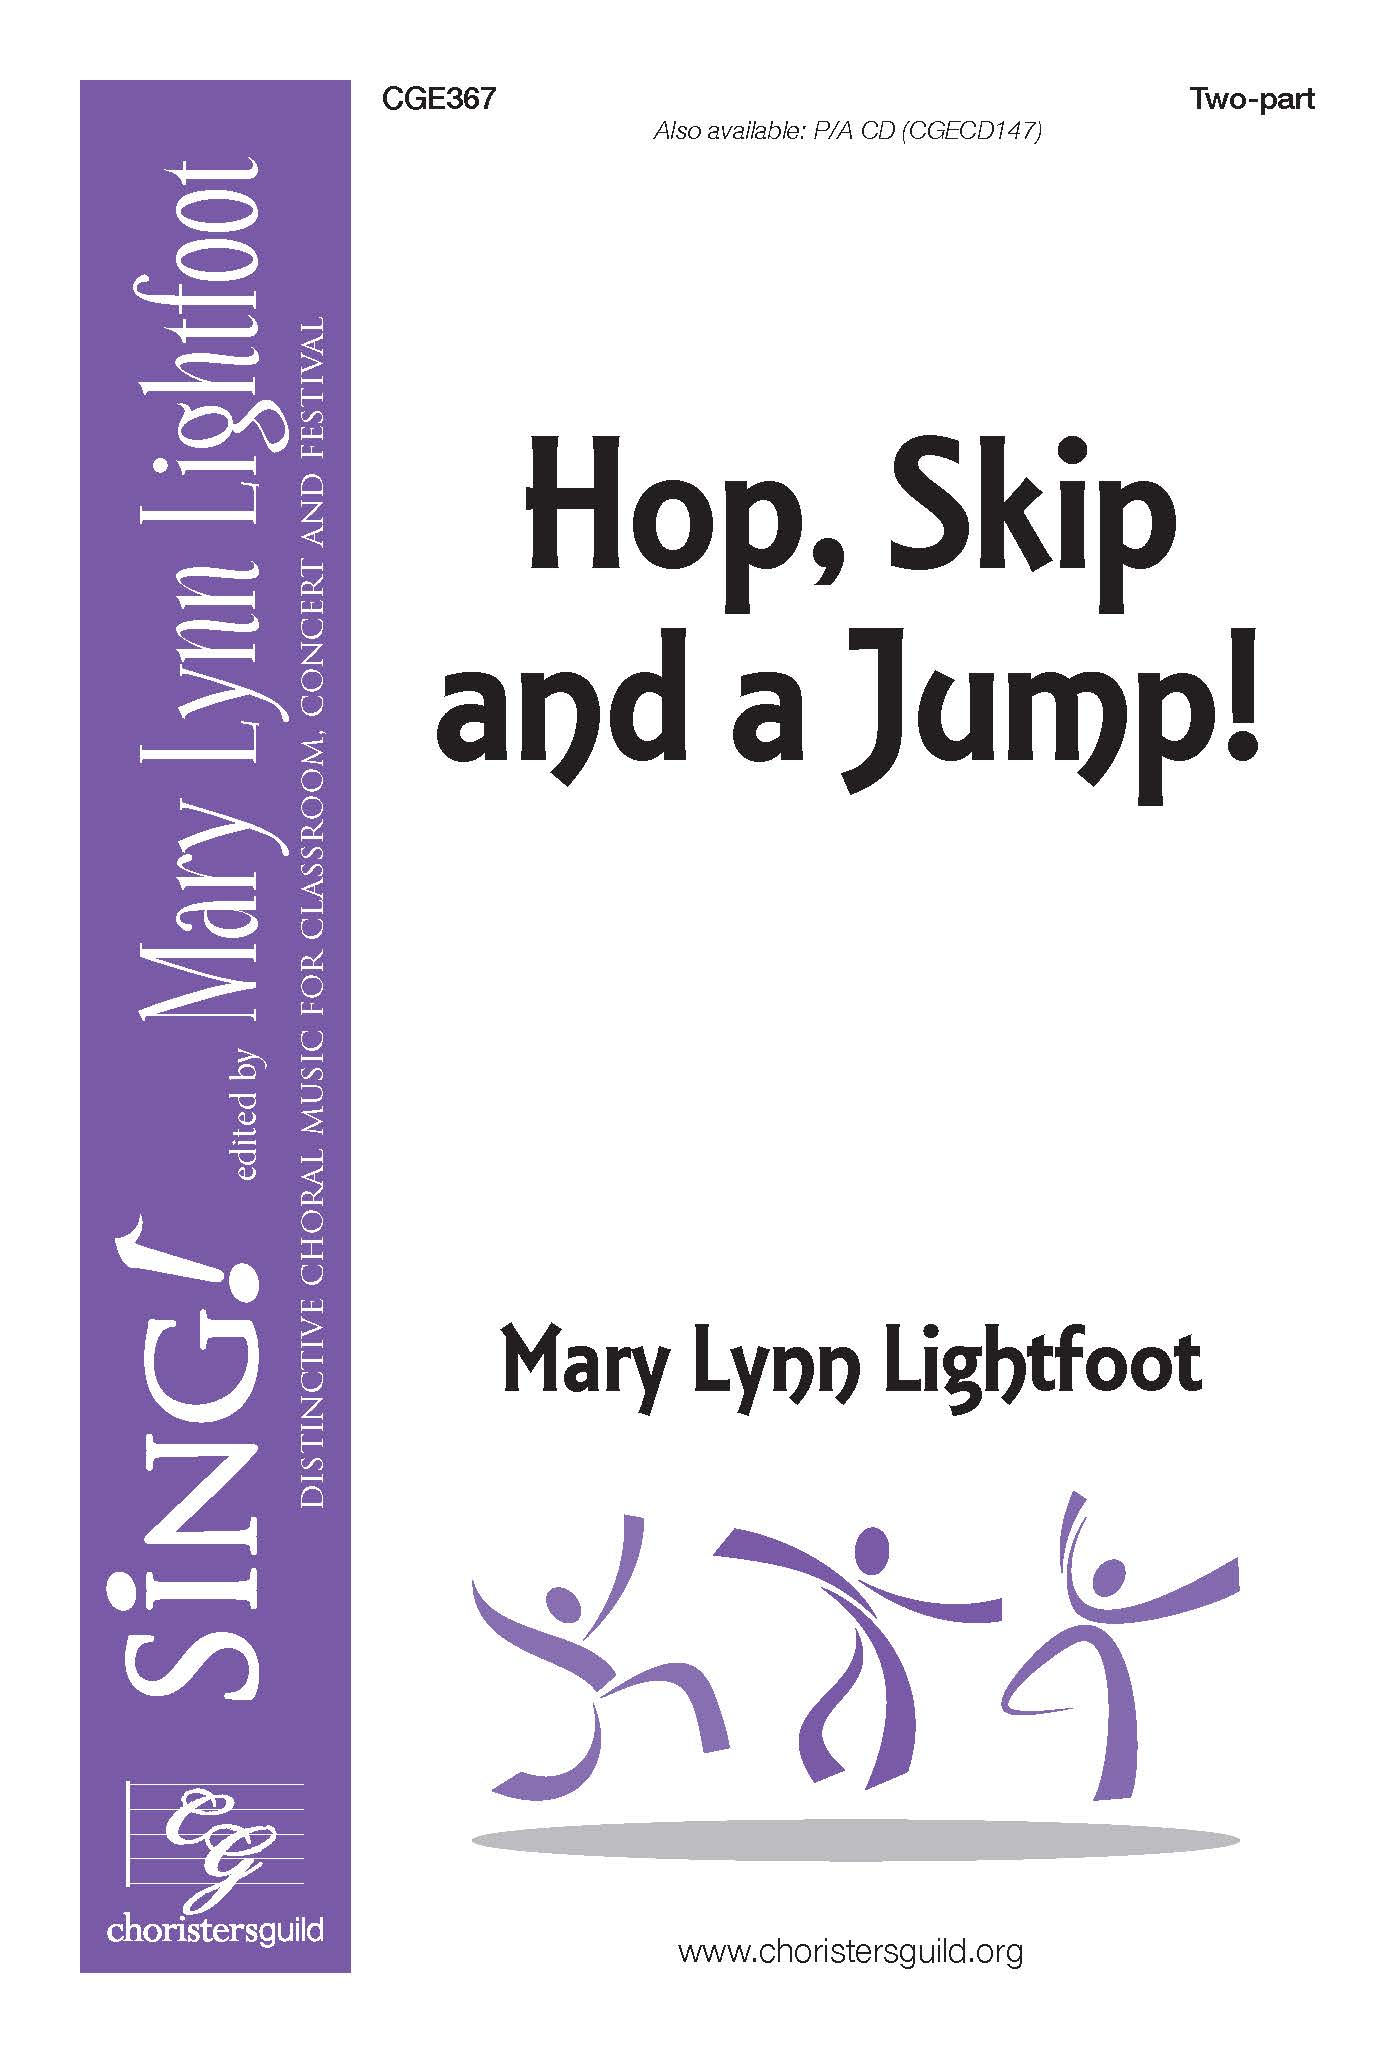 Hop, Skip and a Jump - Two-part